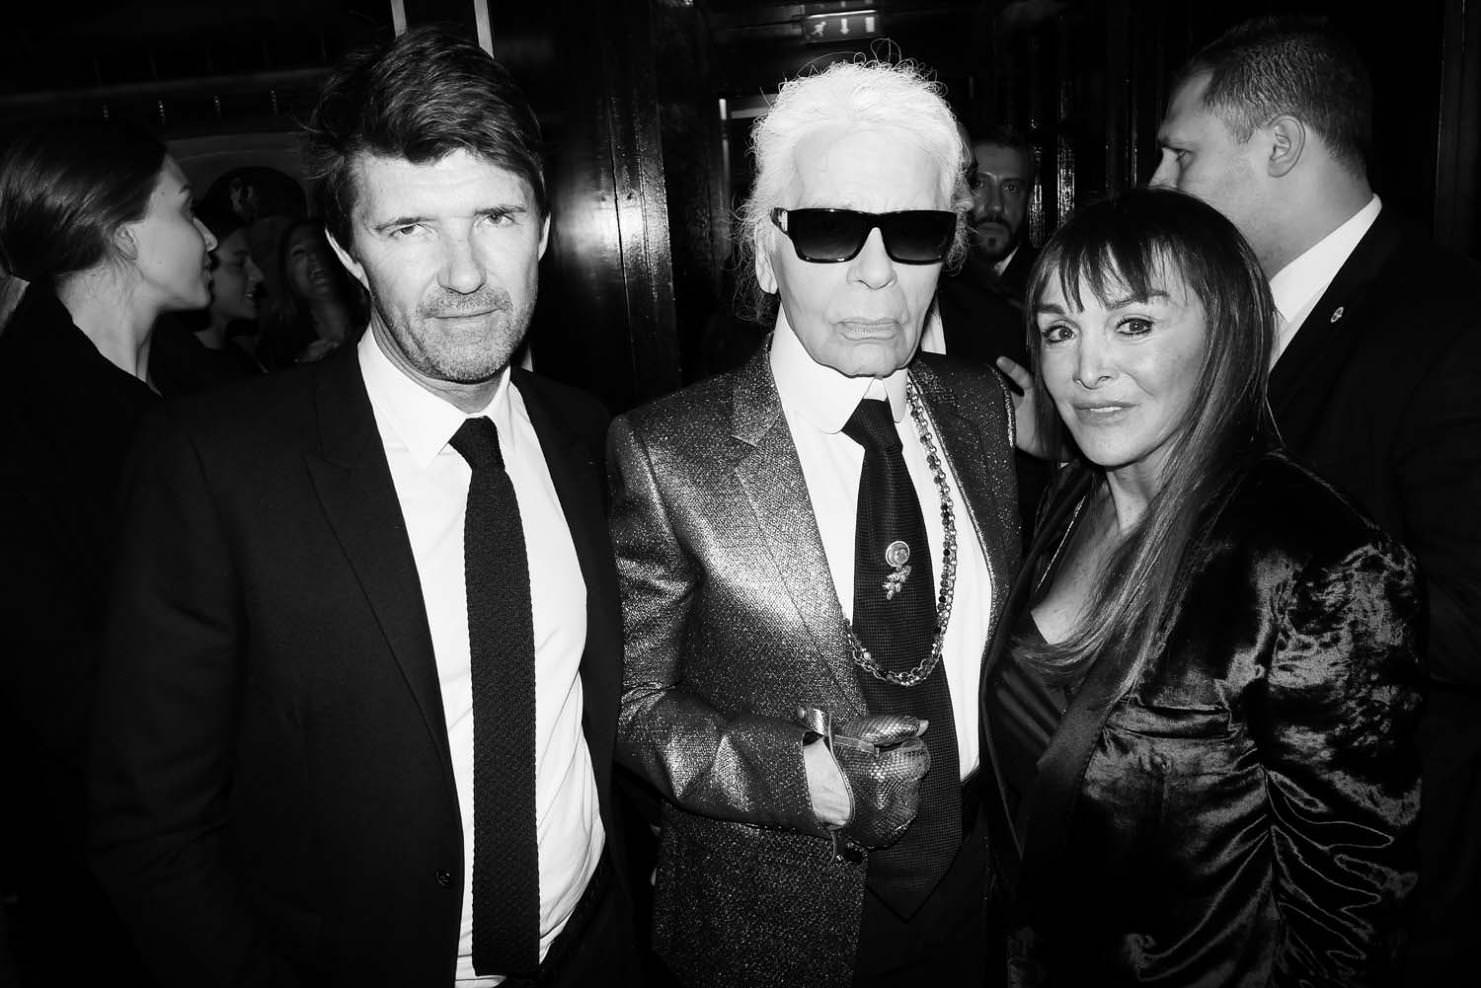 Paul-Emmanuel Reiffers, Karl Lagerfeld and Babeth Djian